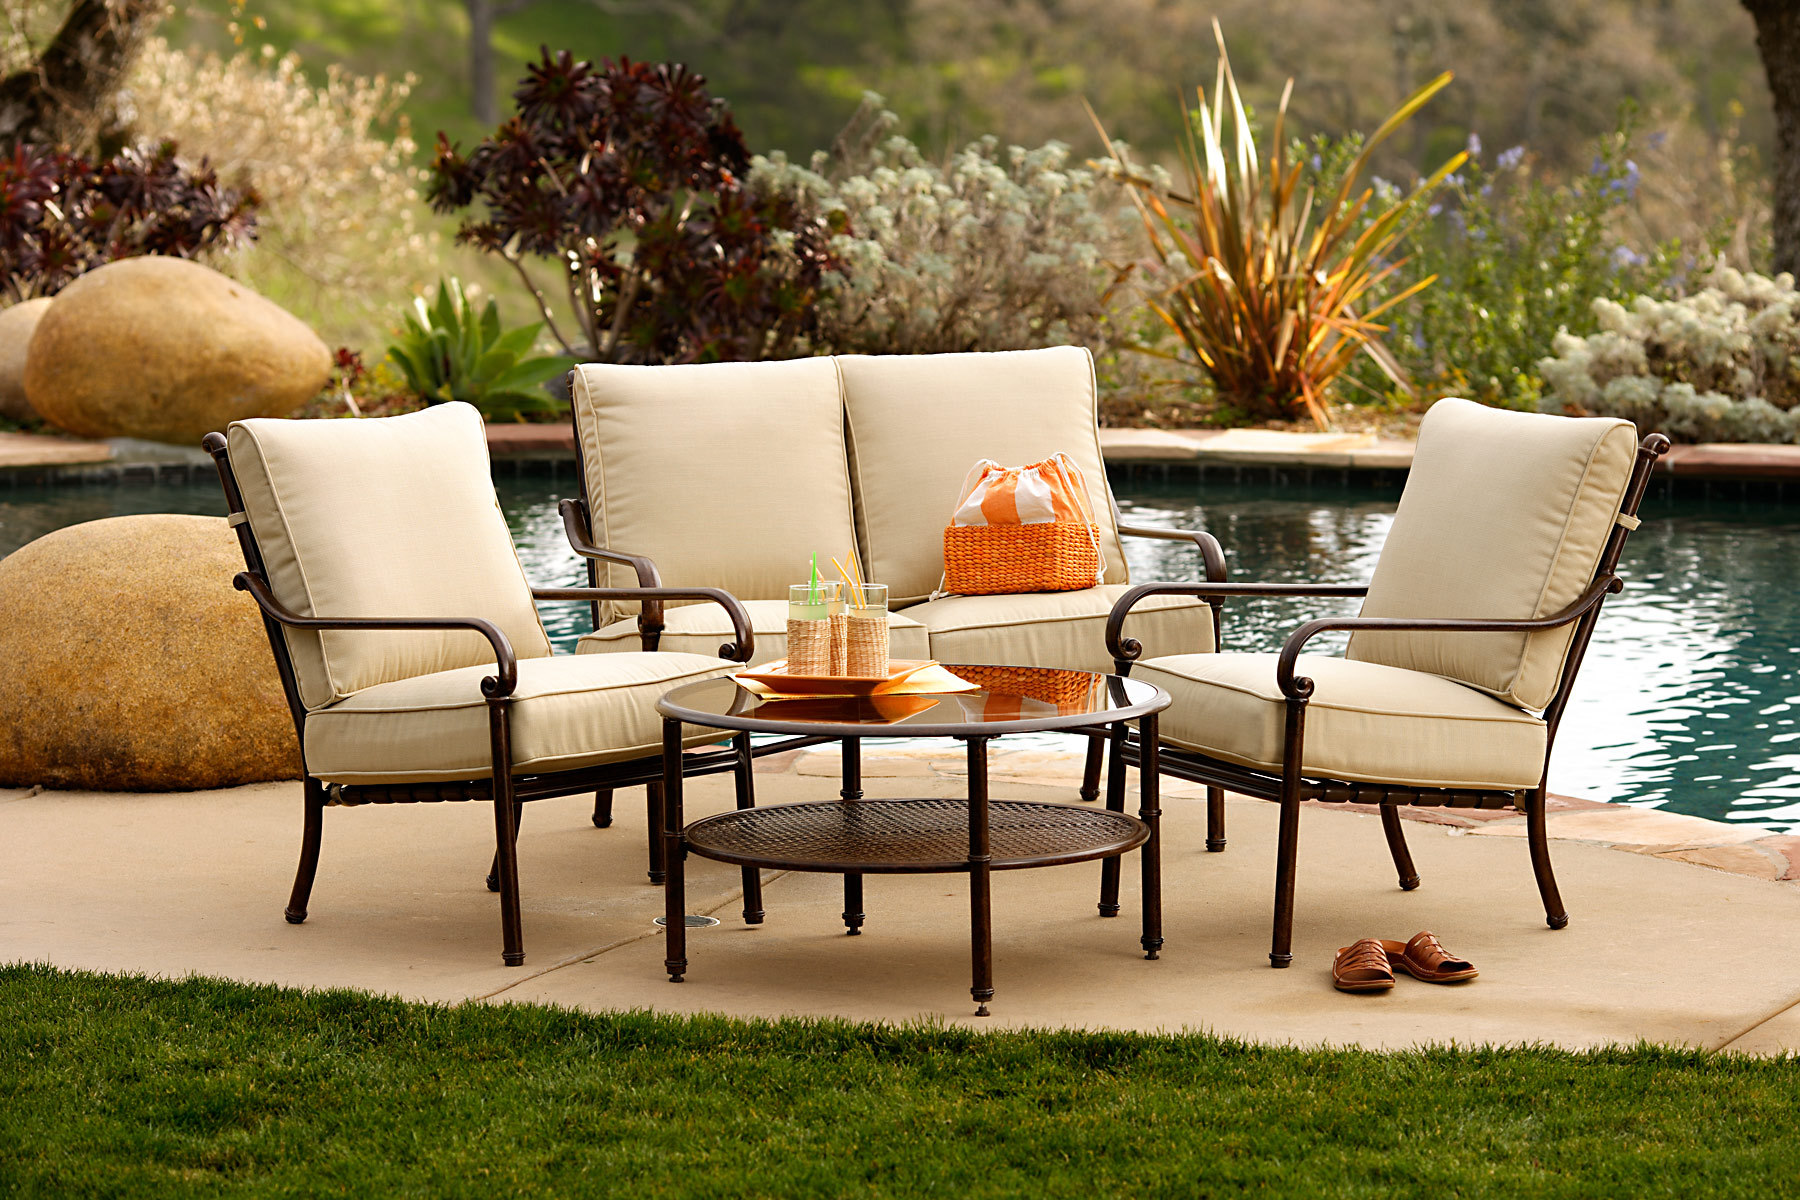 ... Metal Patio Furniture Sets For Outdoor Small Spaces ... Part 86